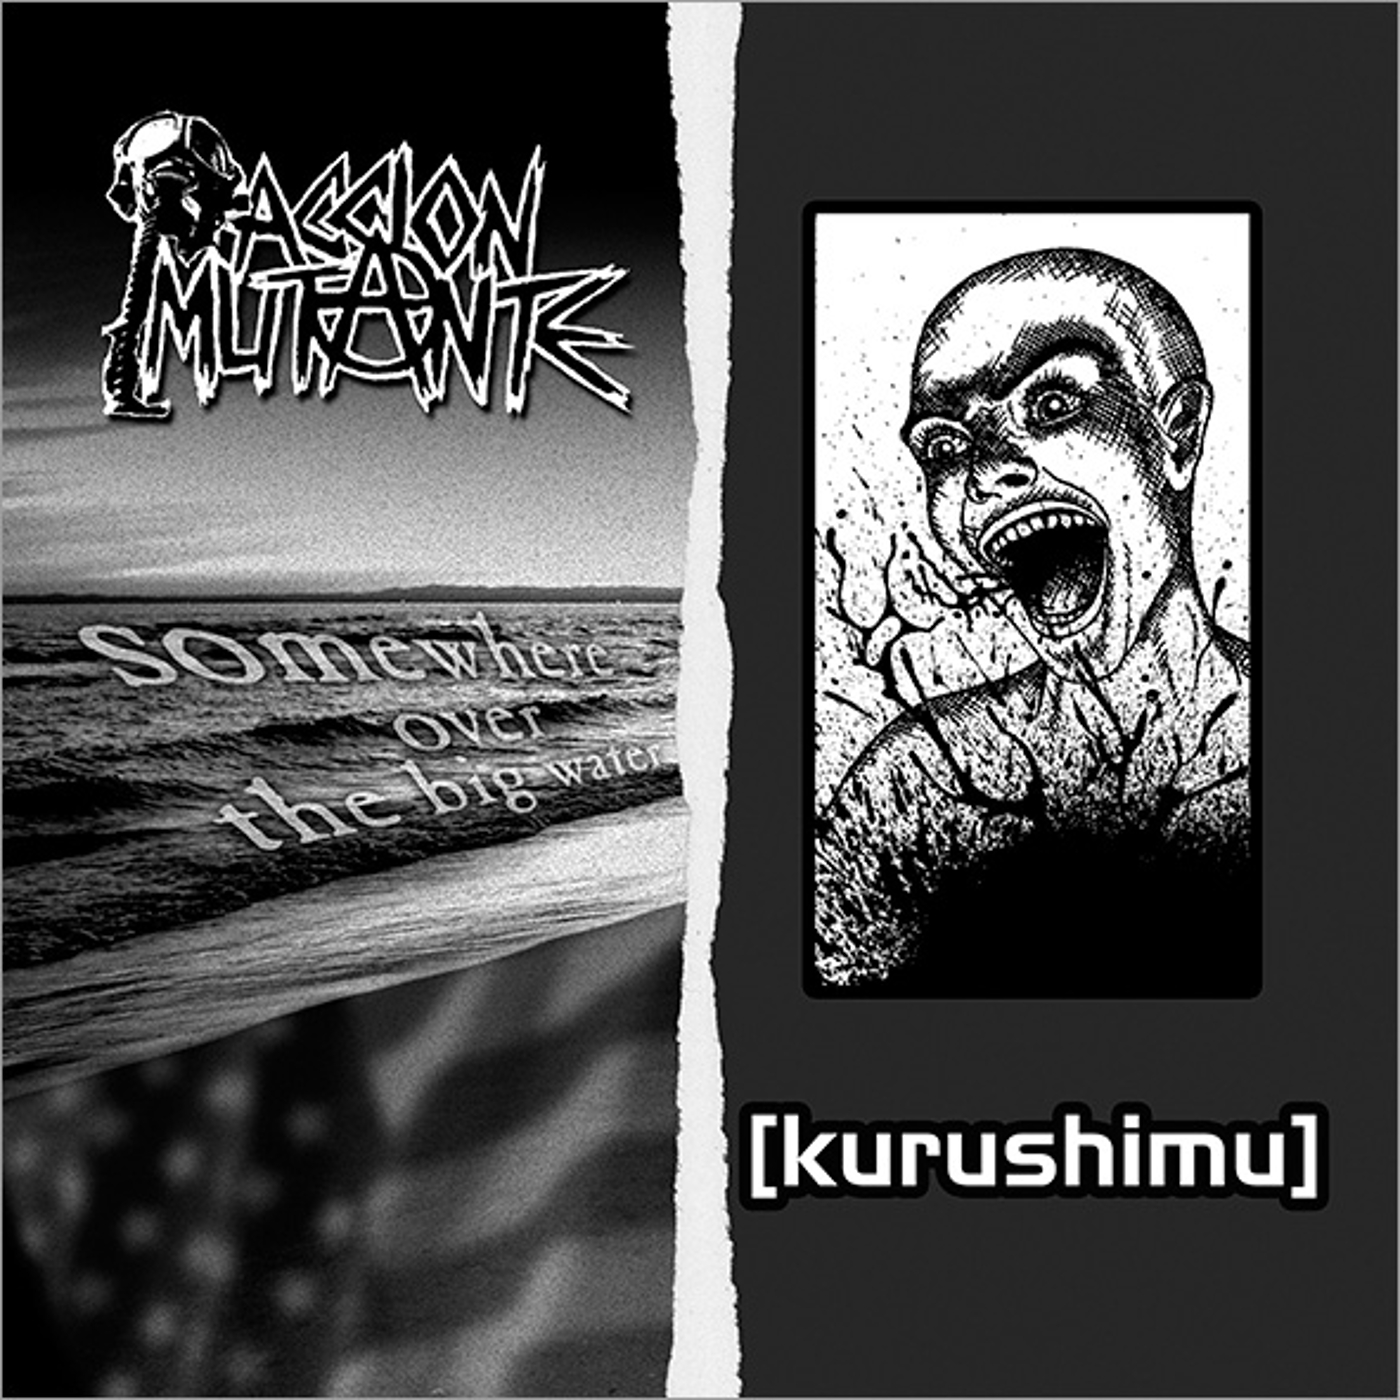 Kurushimu, Accion Mutante - Somewhere Over The Big Water / Kurushimu - 2006